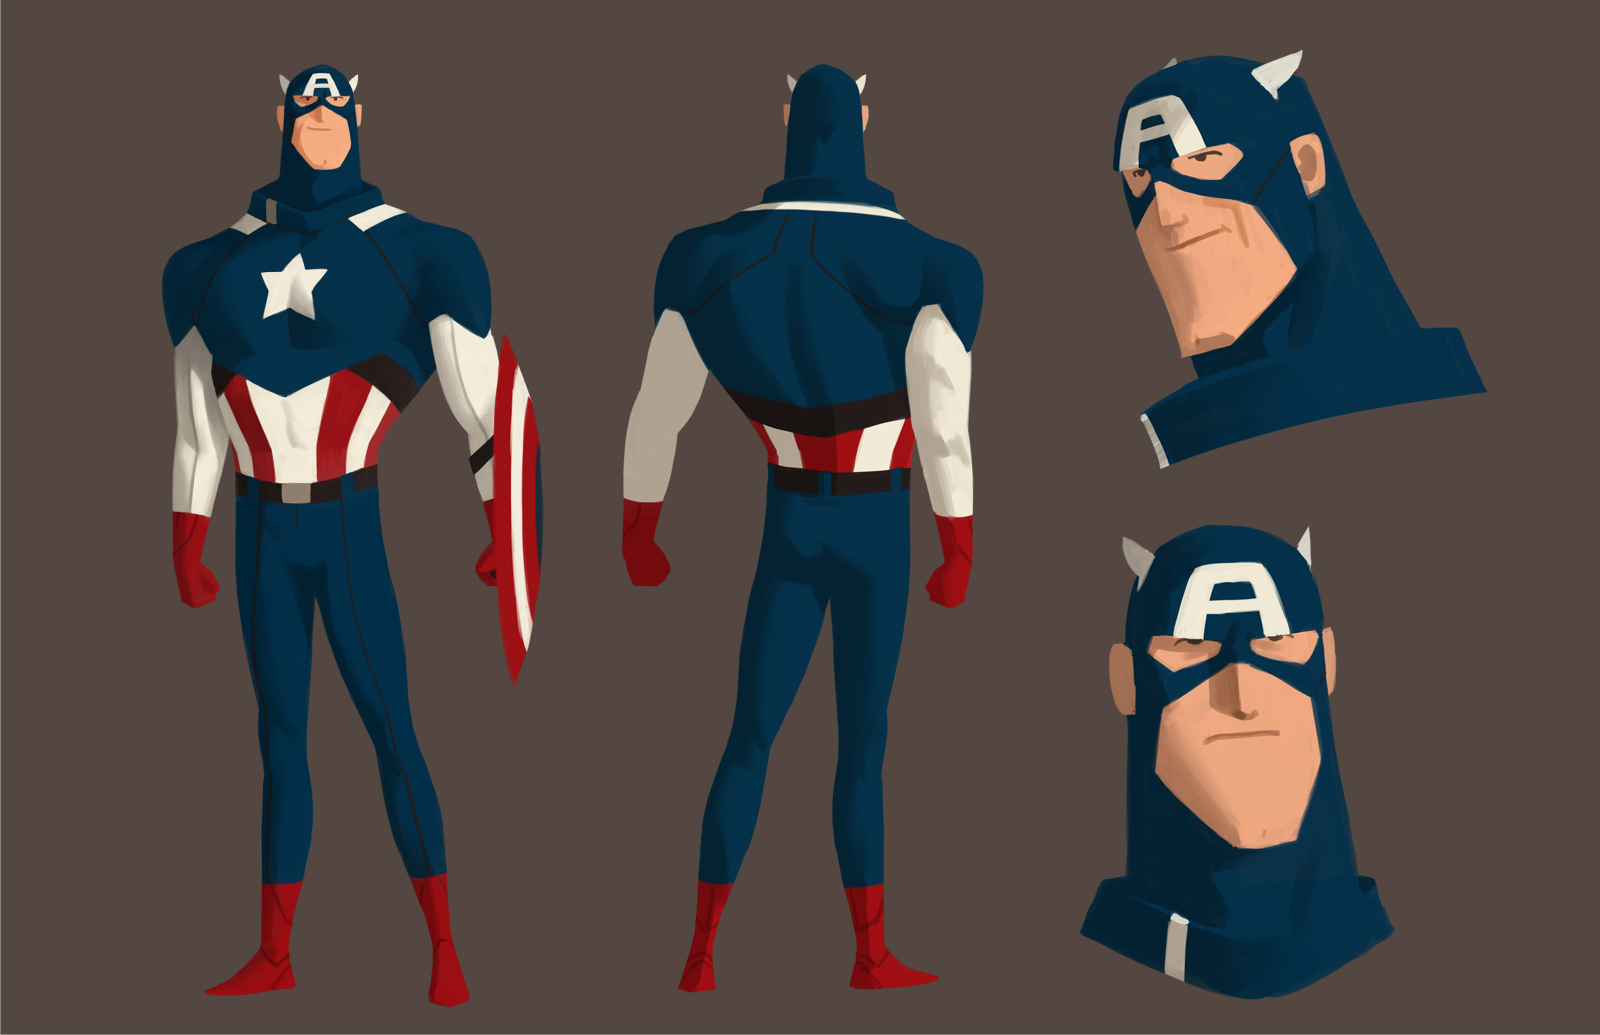 Captain America Cartoon Images: Fashion And Action: Avengers & Animated Captain America